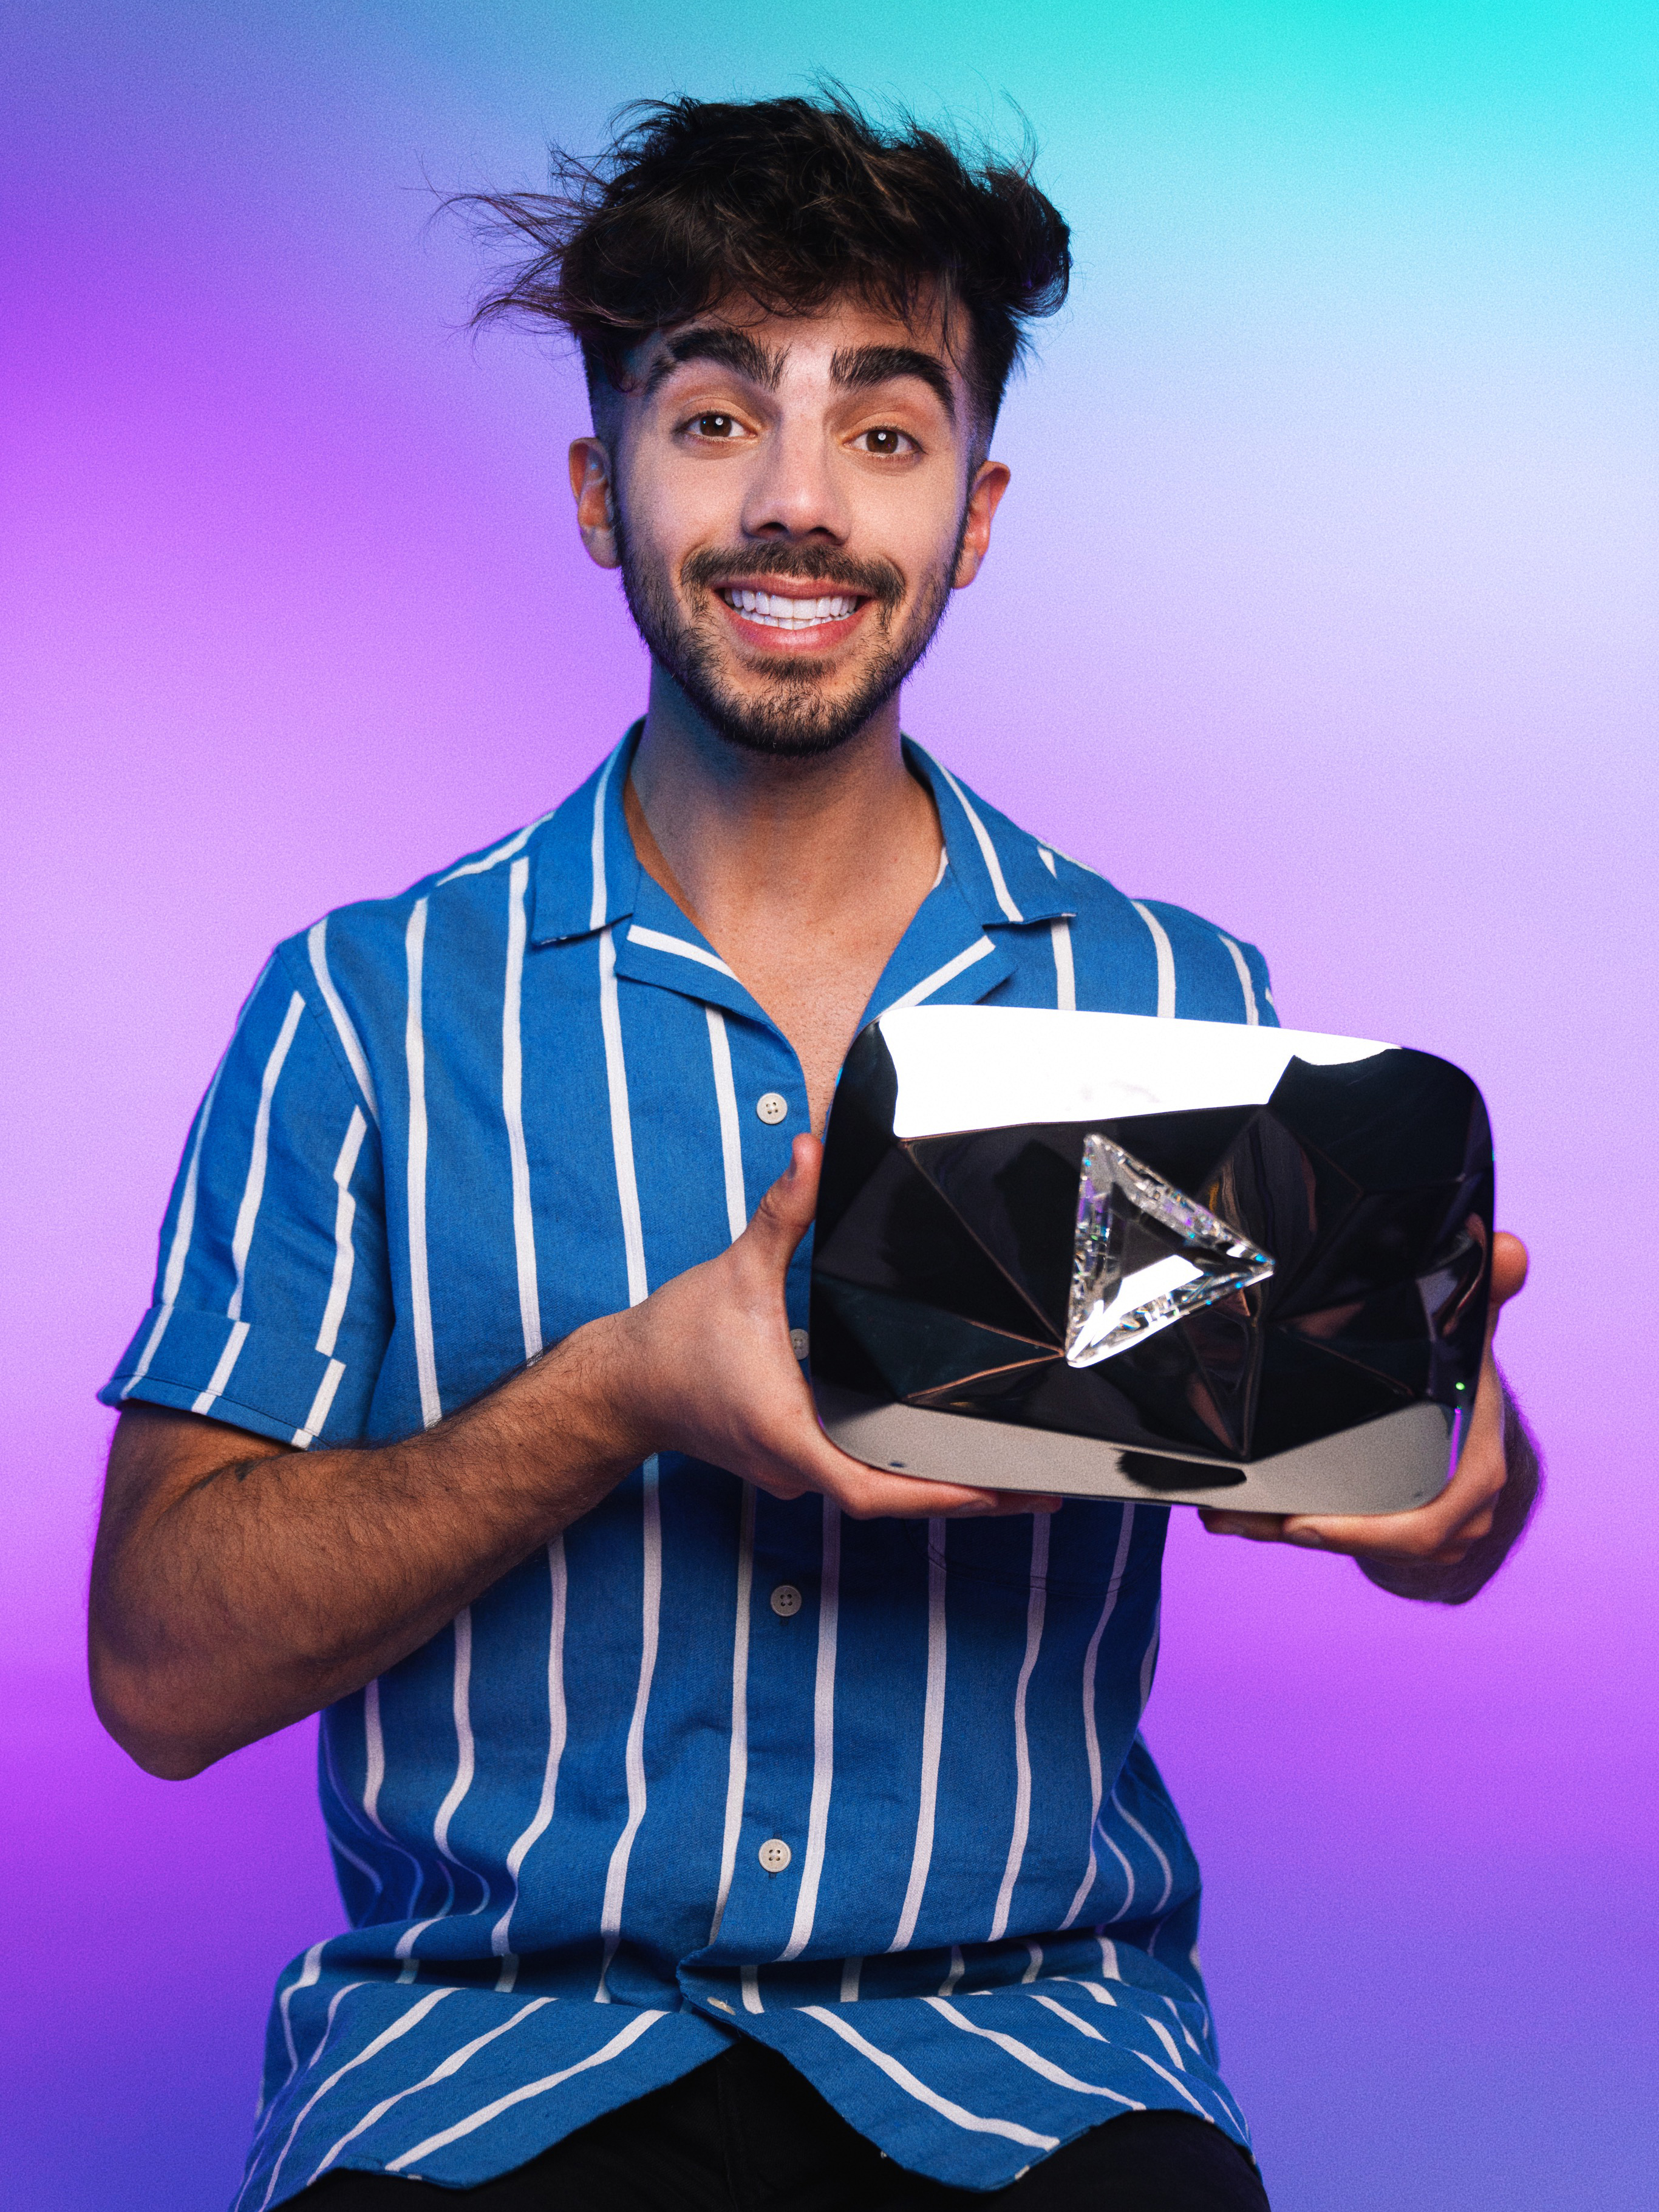 How Federico Vigevani hit 10M subs in six years